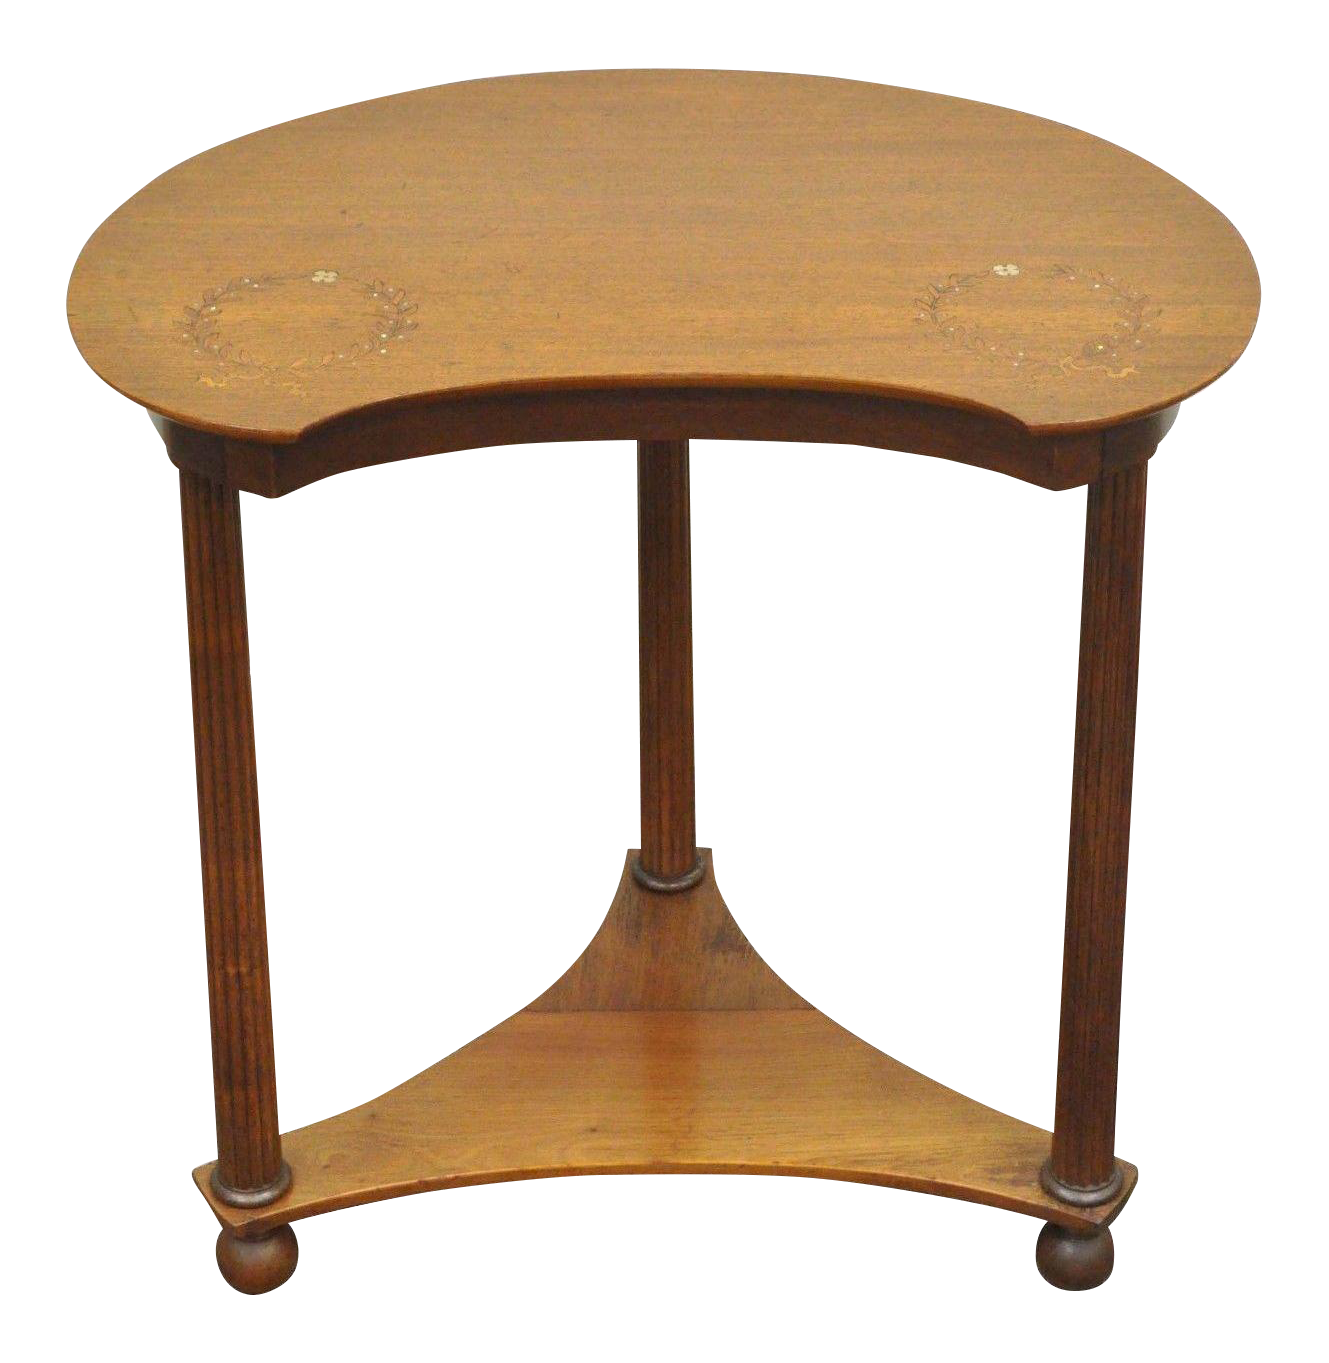 antique victorian mahogany mother pearl inlay kidney shaped side accent table chairish patio dining cover outdoor sun lounge copper desk lamp coffee sets ikea average height small